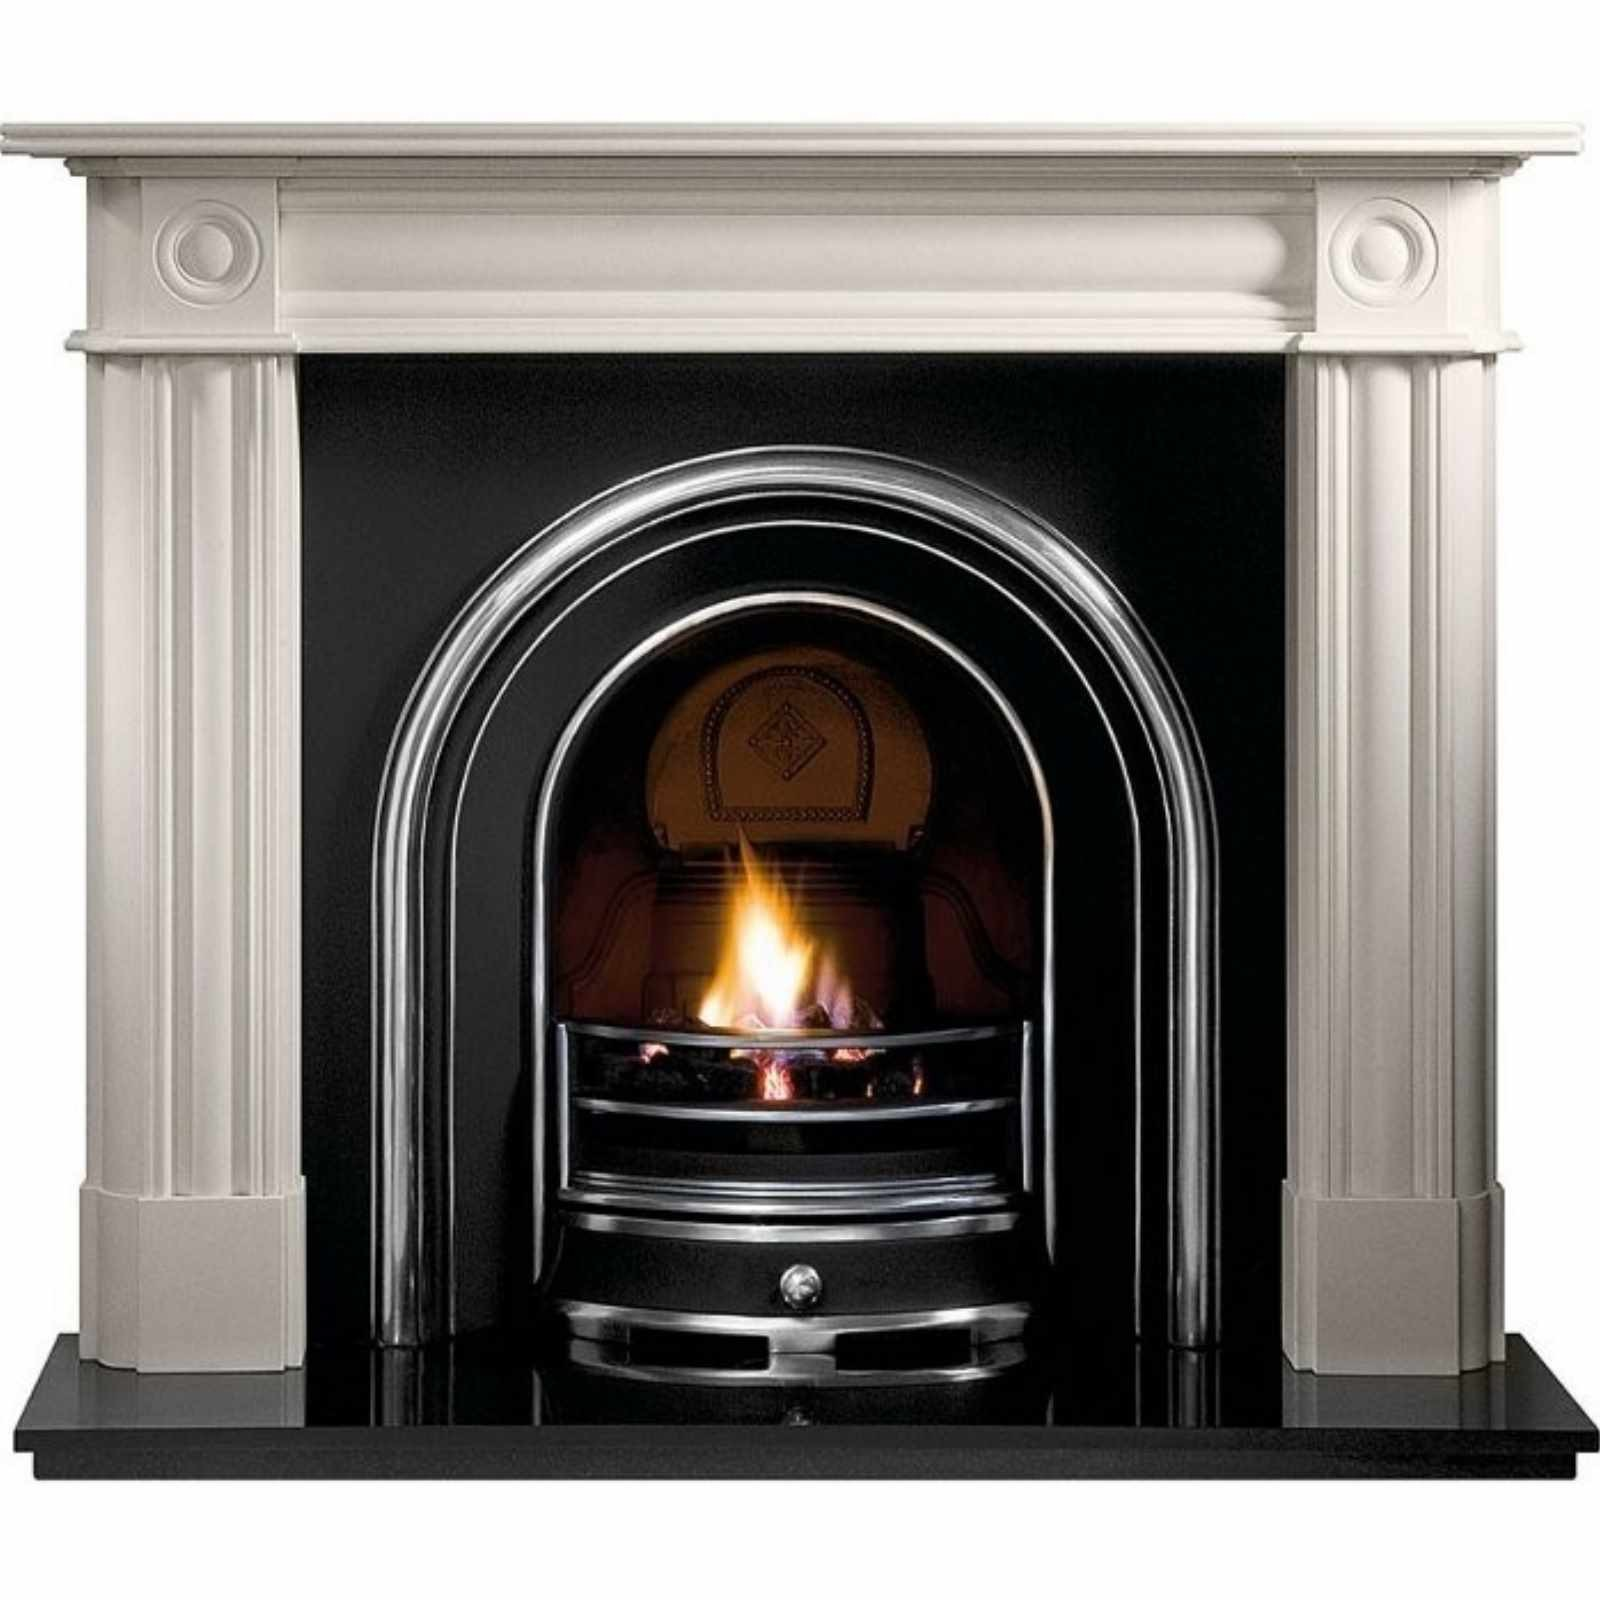 Fantastic Deals Gallery Chiswick Stone Fireplace With Jubilee Cast Iron Arch Stunning Design